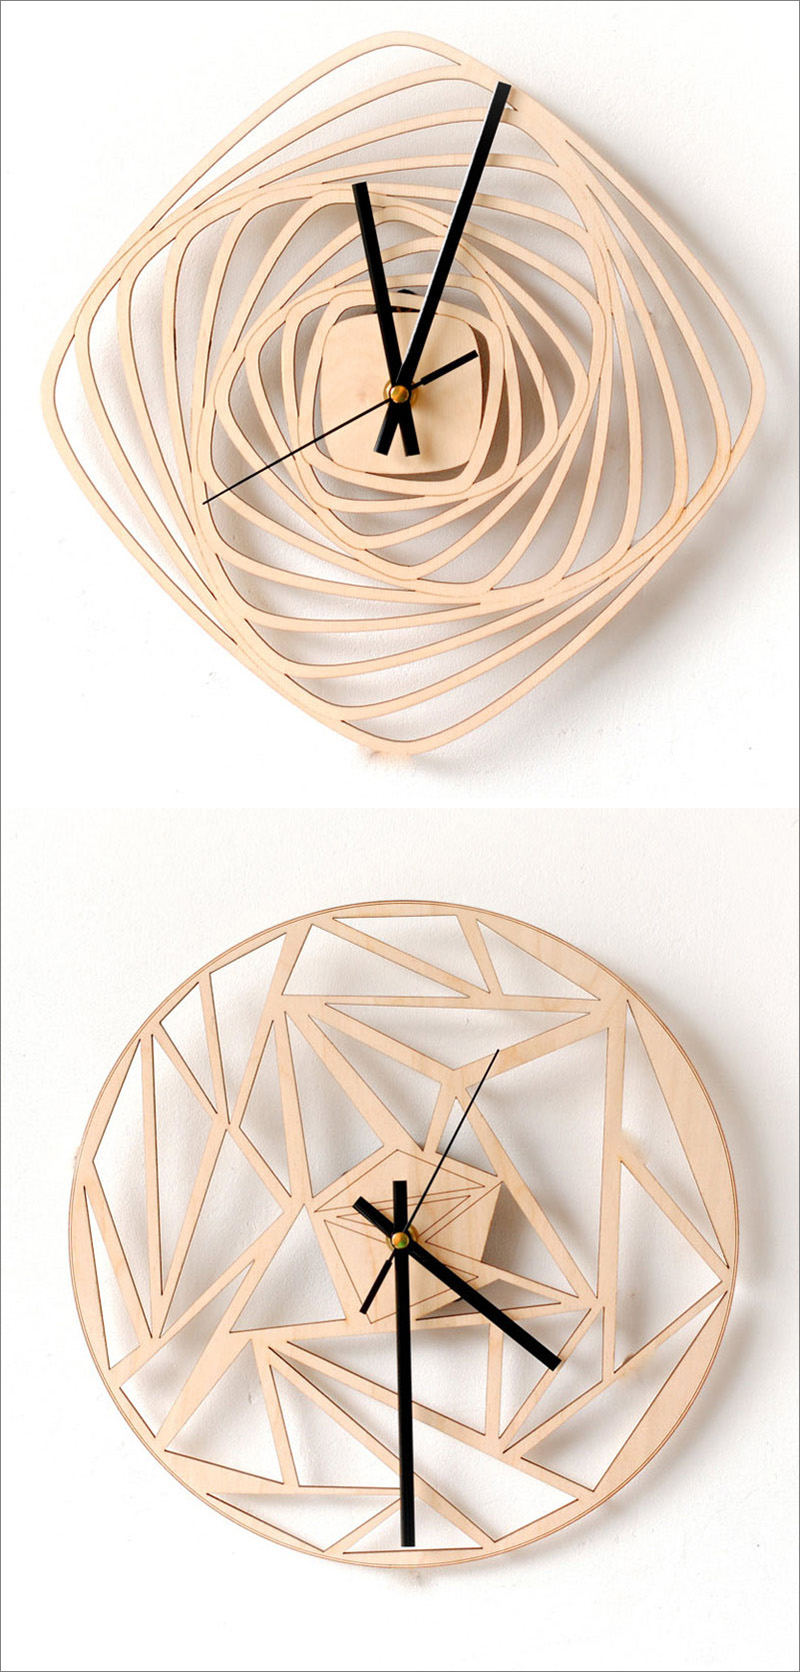 These intricately cut modern wood wall clocks feature a geometric look with clean lines and unique patterns that mix angles and smooth curves.